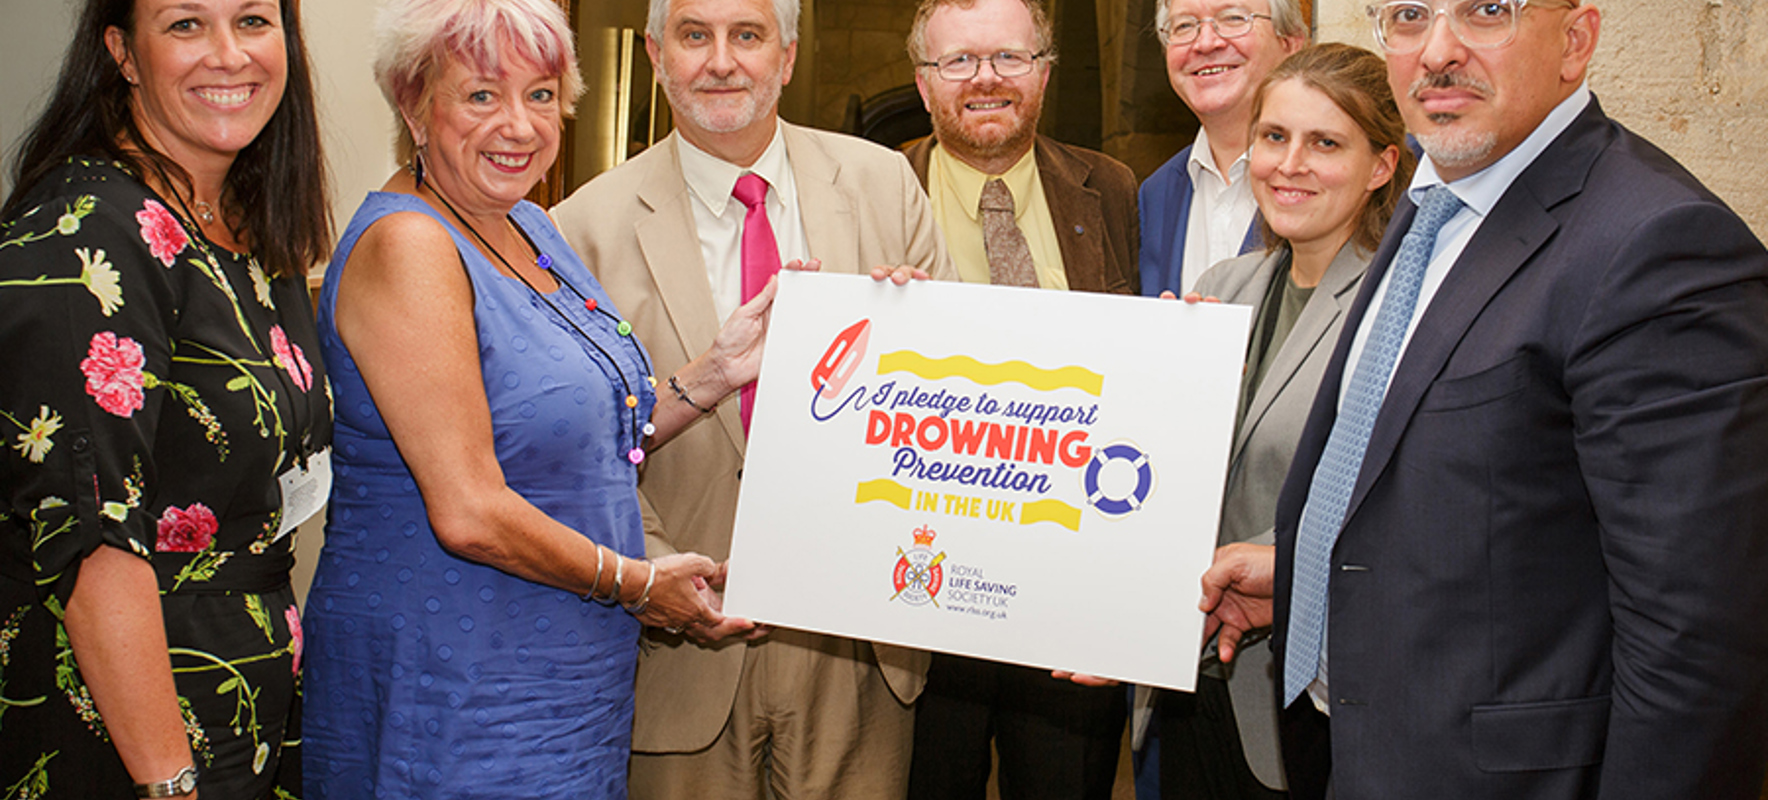 MPs pledge support to the Royal Life Saving Society UK after charity's trip to Westminster